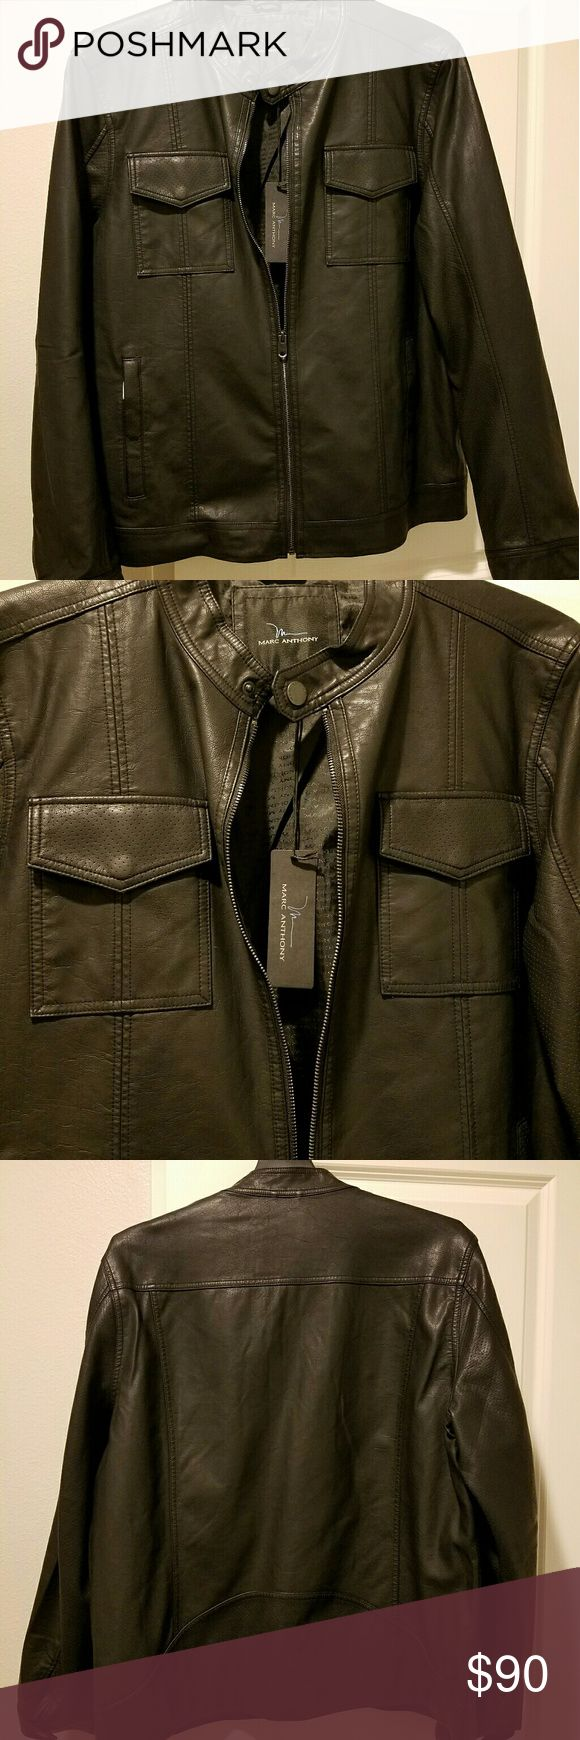 Black Faux leather jacket Men's biker style, zip-up with top button collar Marc Anthony Jackets & Coats